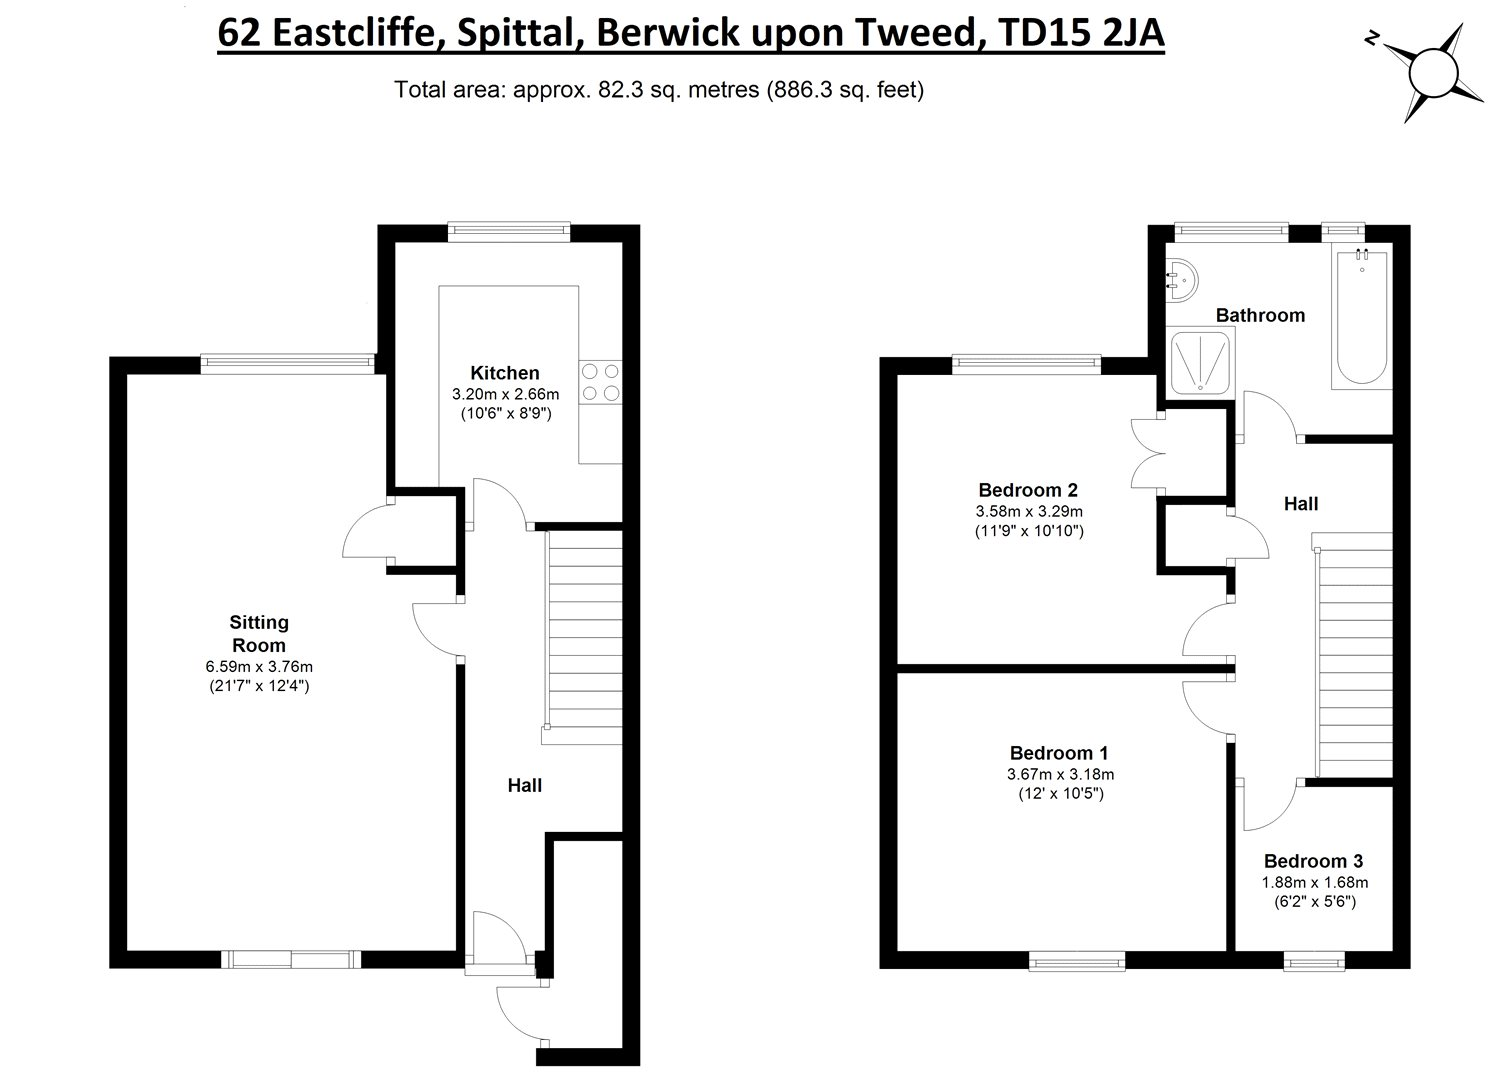 Floorplans for Eastcliffe, Spittal, Berwick-Upon-Tweed, TD15